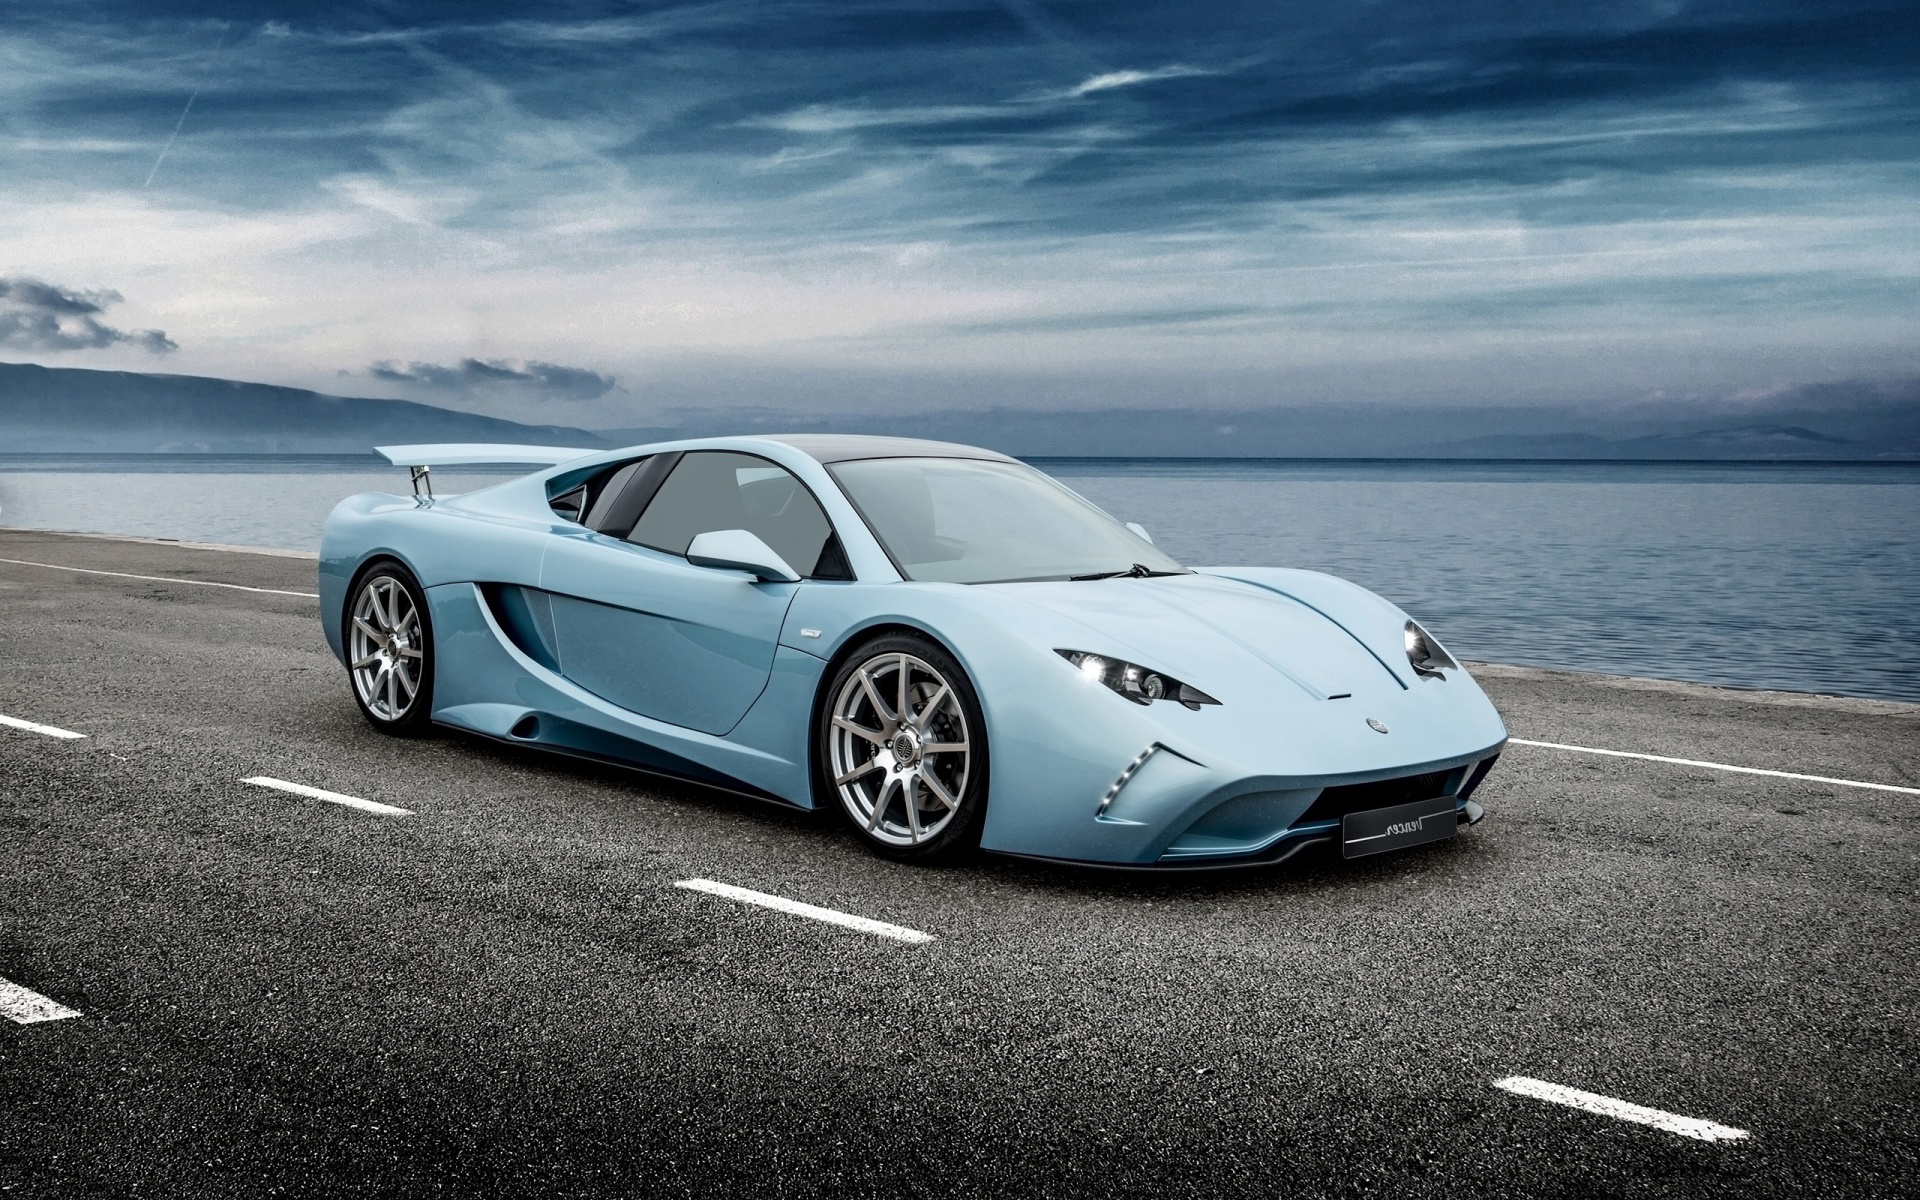 Supercar Wallpaper HD Download All About Gallery Car 1920x1200